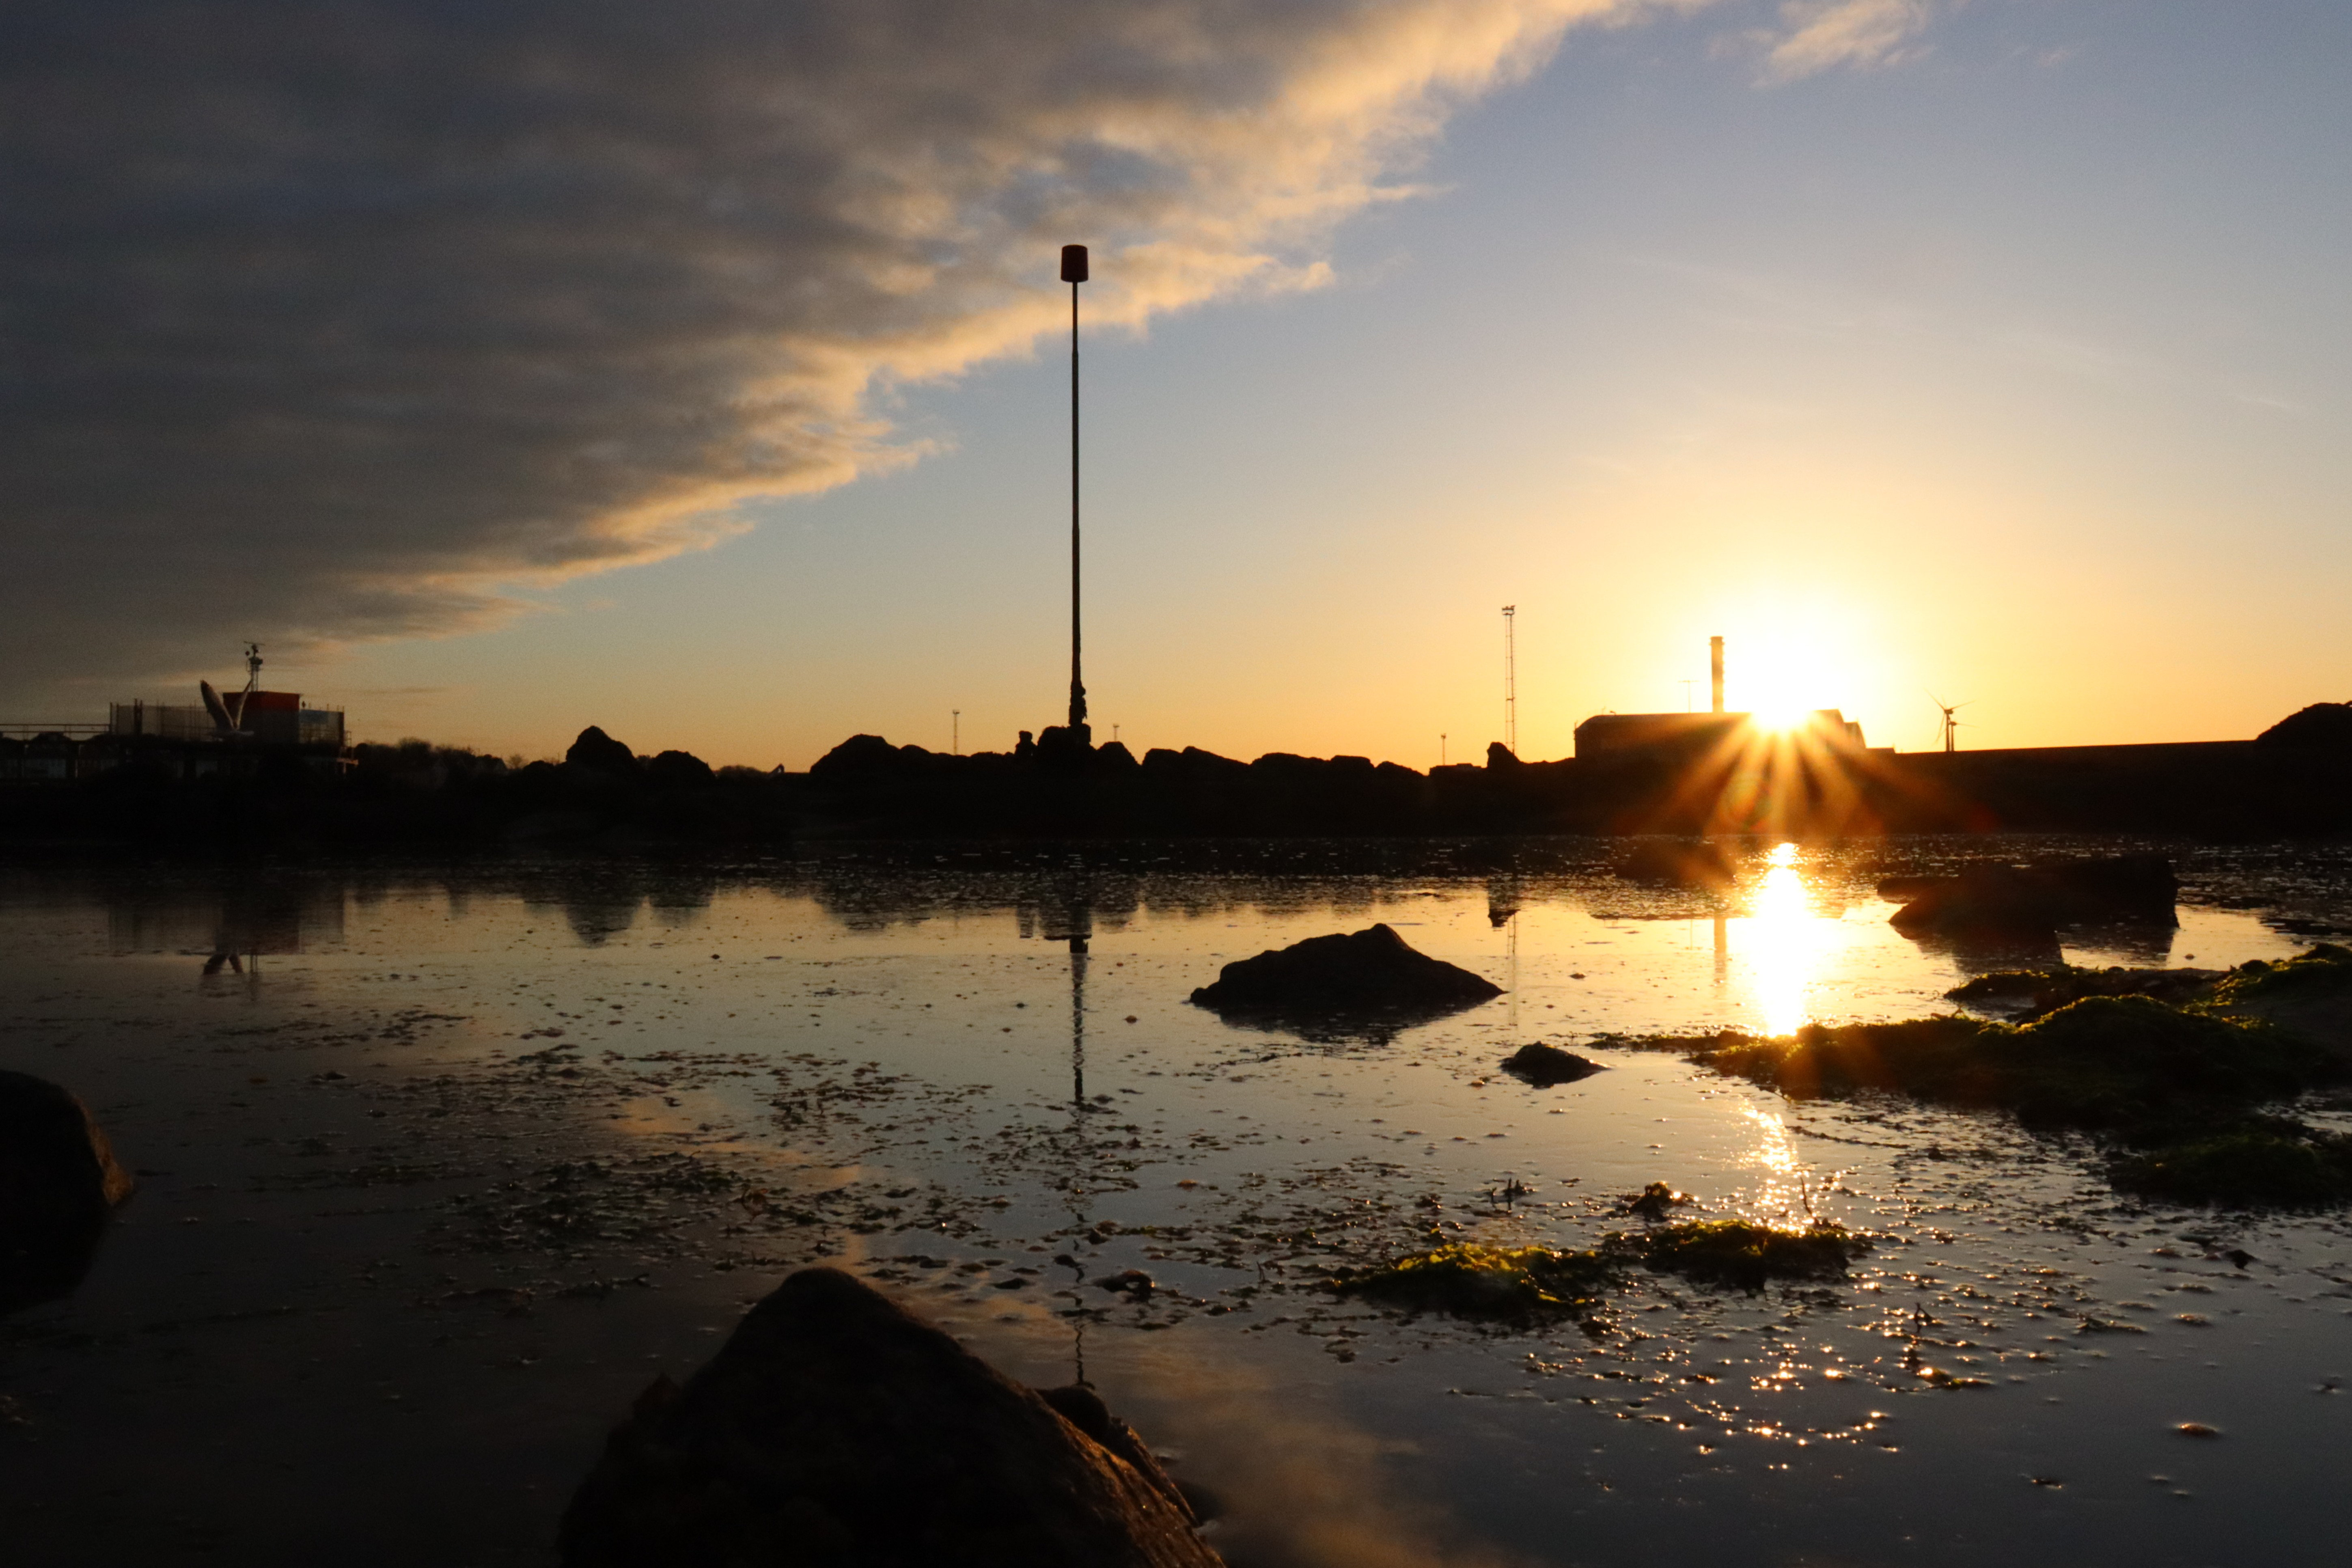 Sun rising over Shoreham port that is reflecting a wave of clouds into the water below.